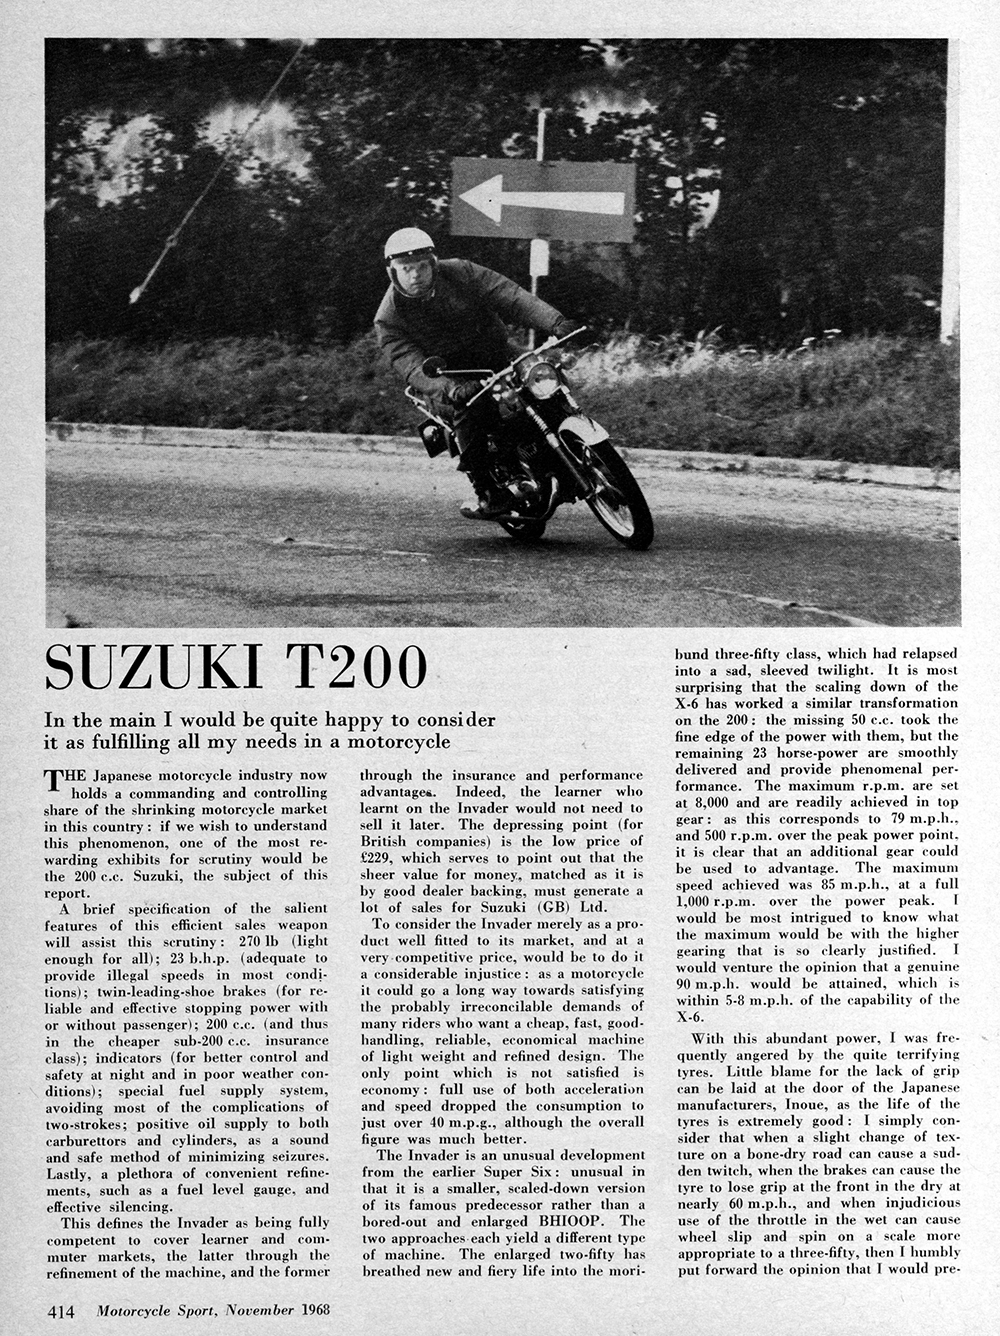 1969 Suzuki T200 road test 1.jpg